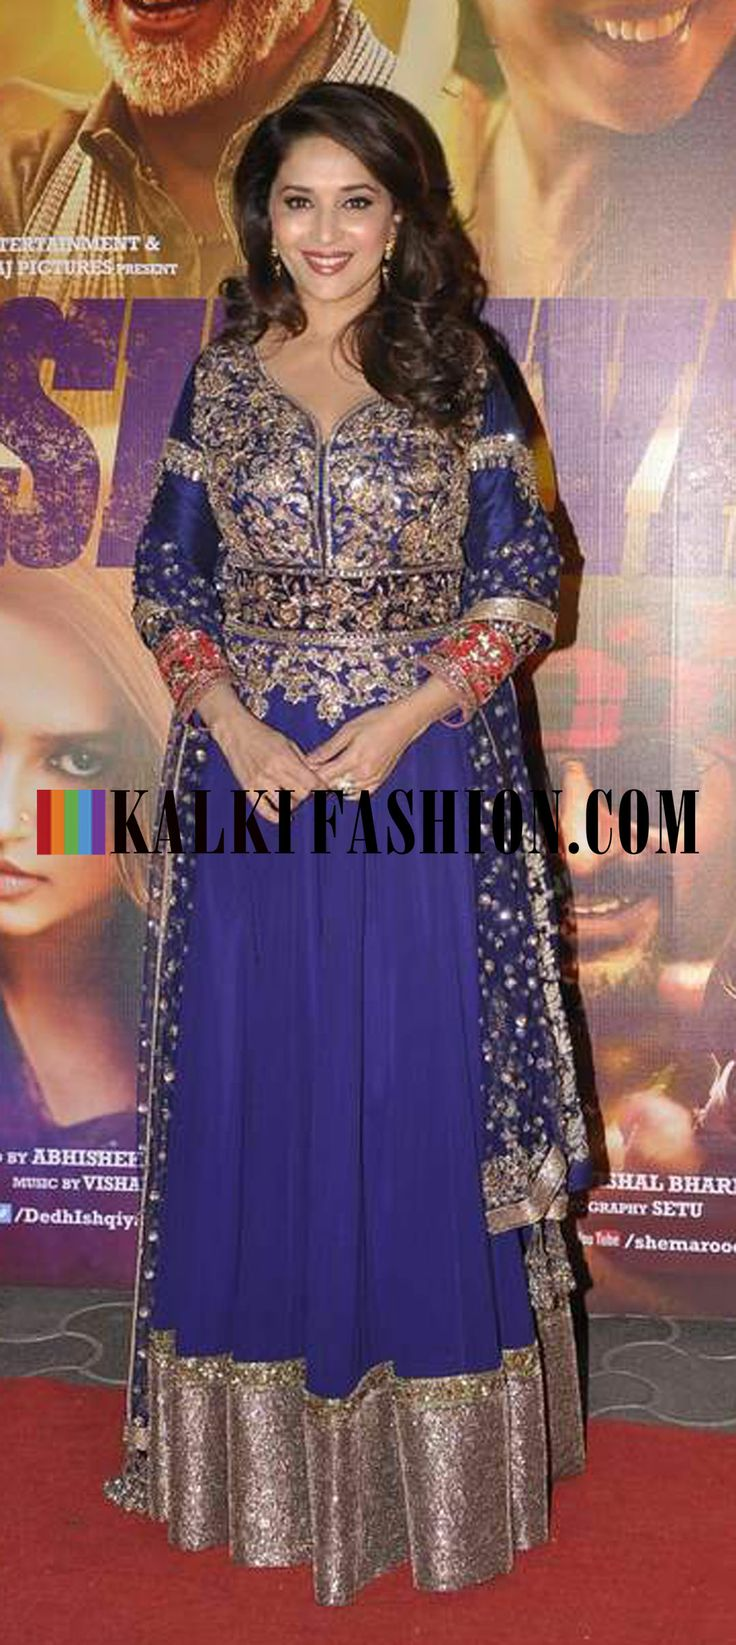 http://www.kalkifashion.com/ Madhuri Dixit Nene in blue floor length anarkali suit by Manish Malhotra at the premier of her movie Dedh Ishqiya